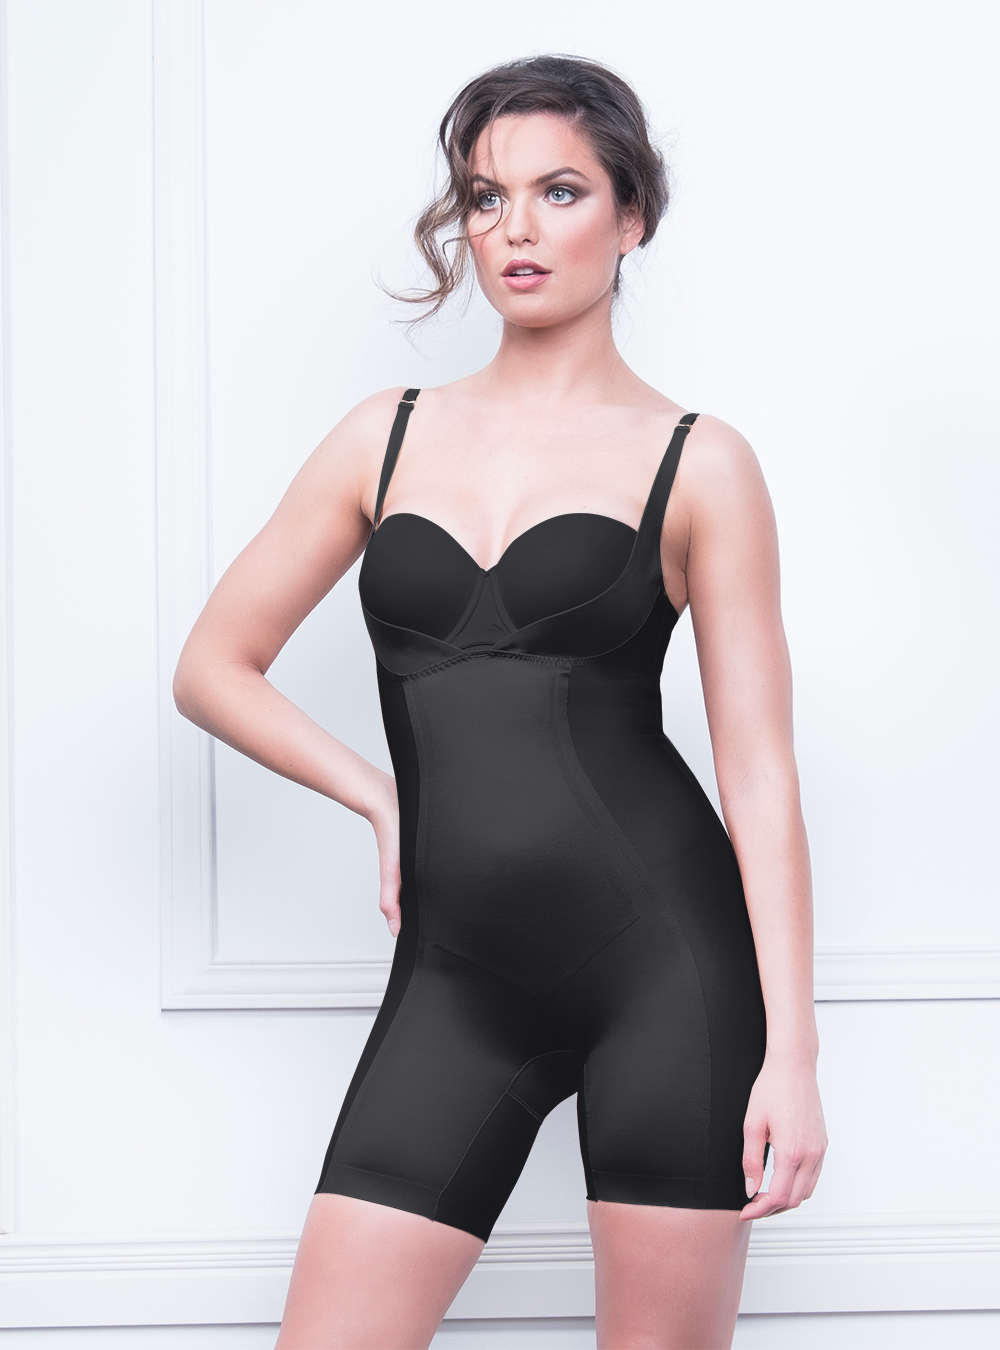 The Star Body Shaper